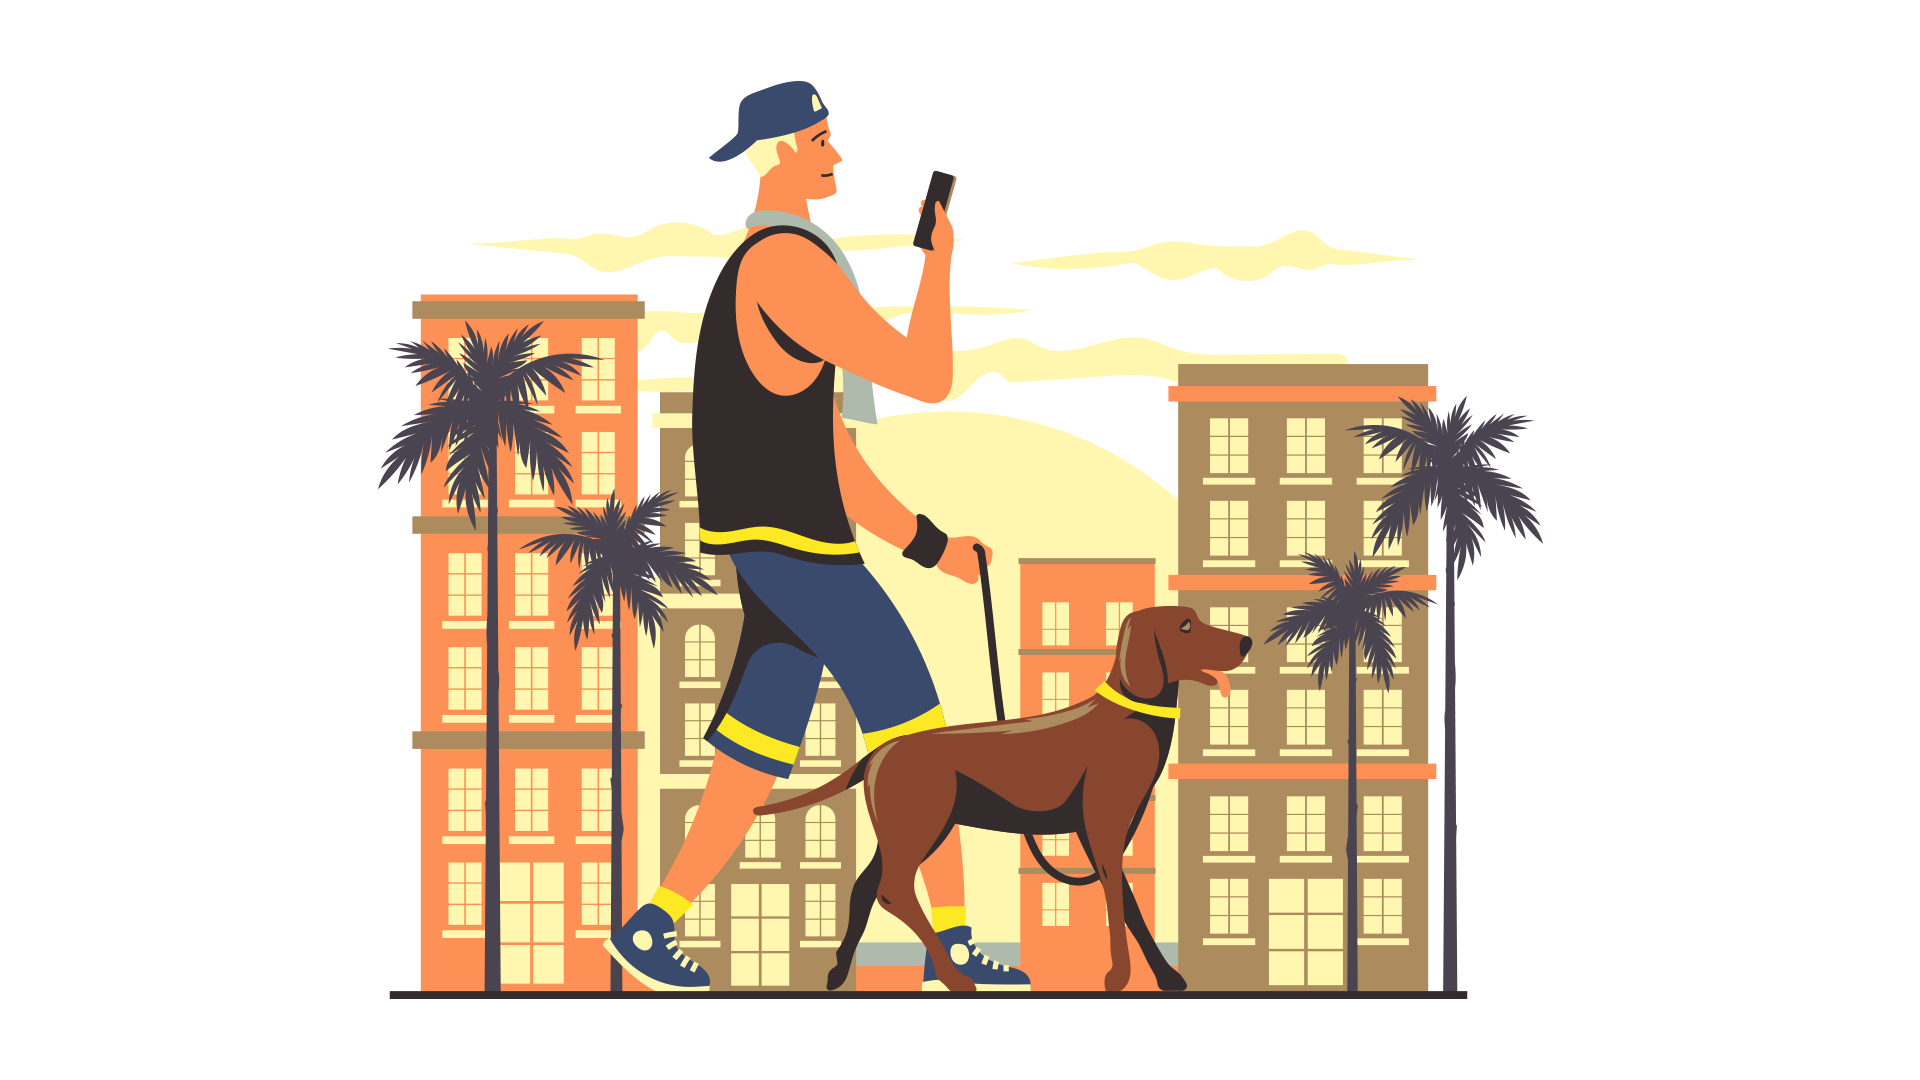 How to Develop an On-Demand Dog Walking Service: Top 8 Insights